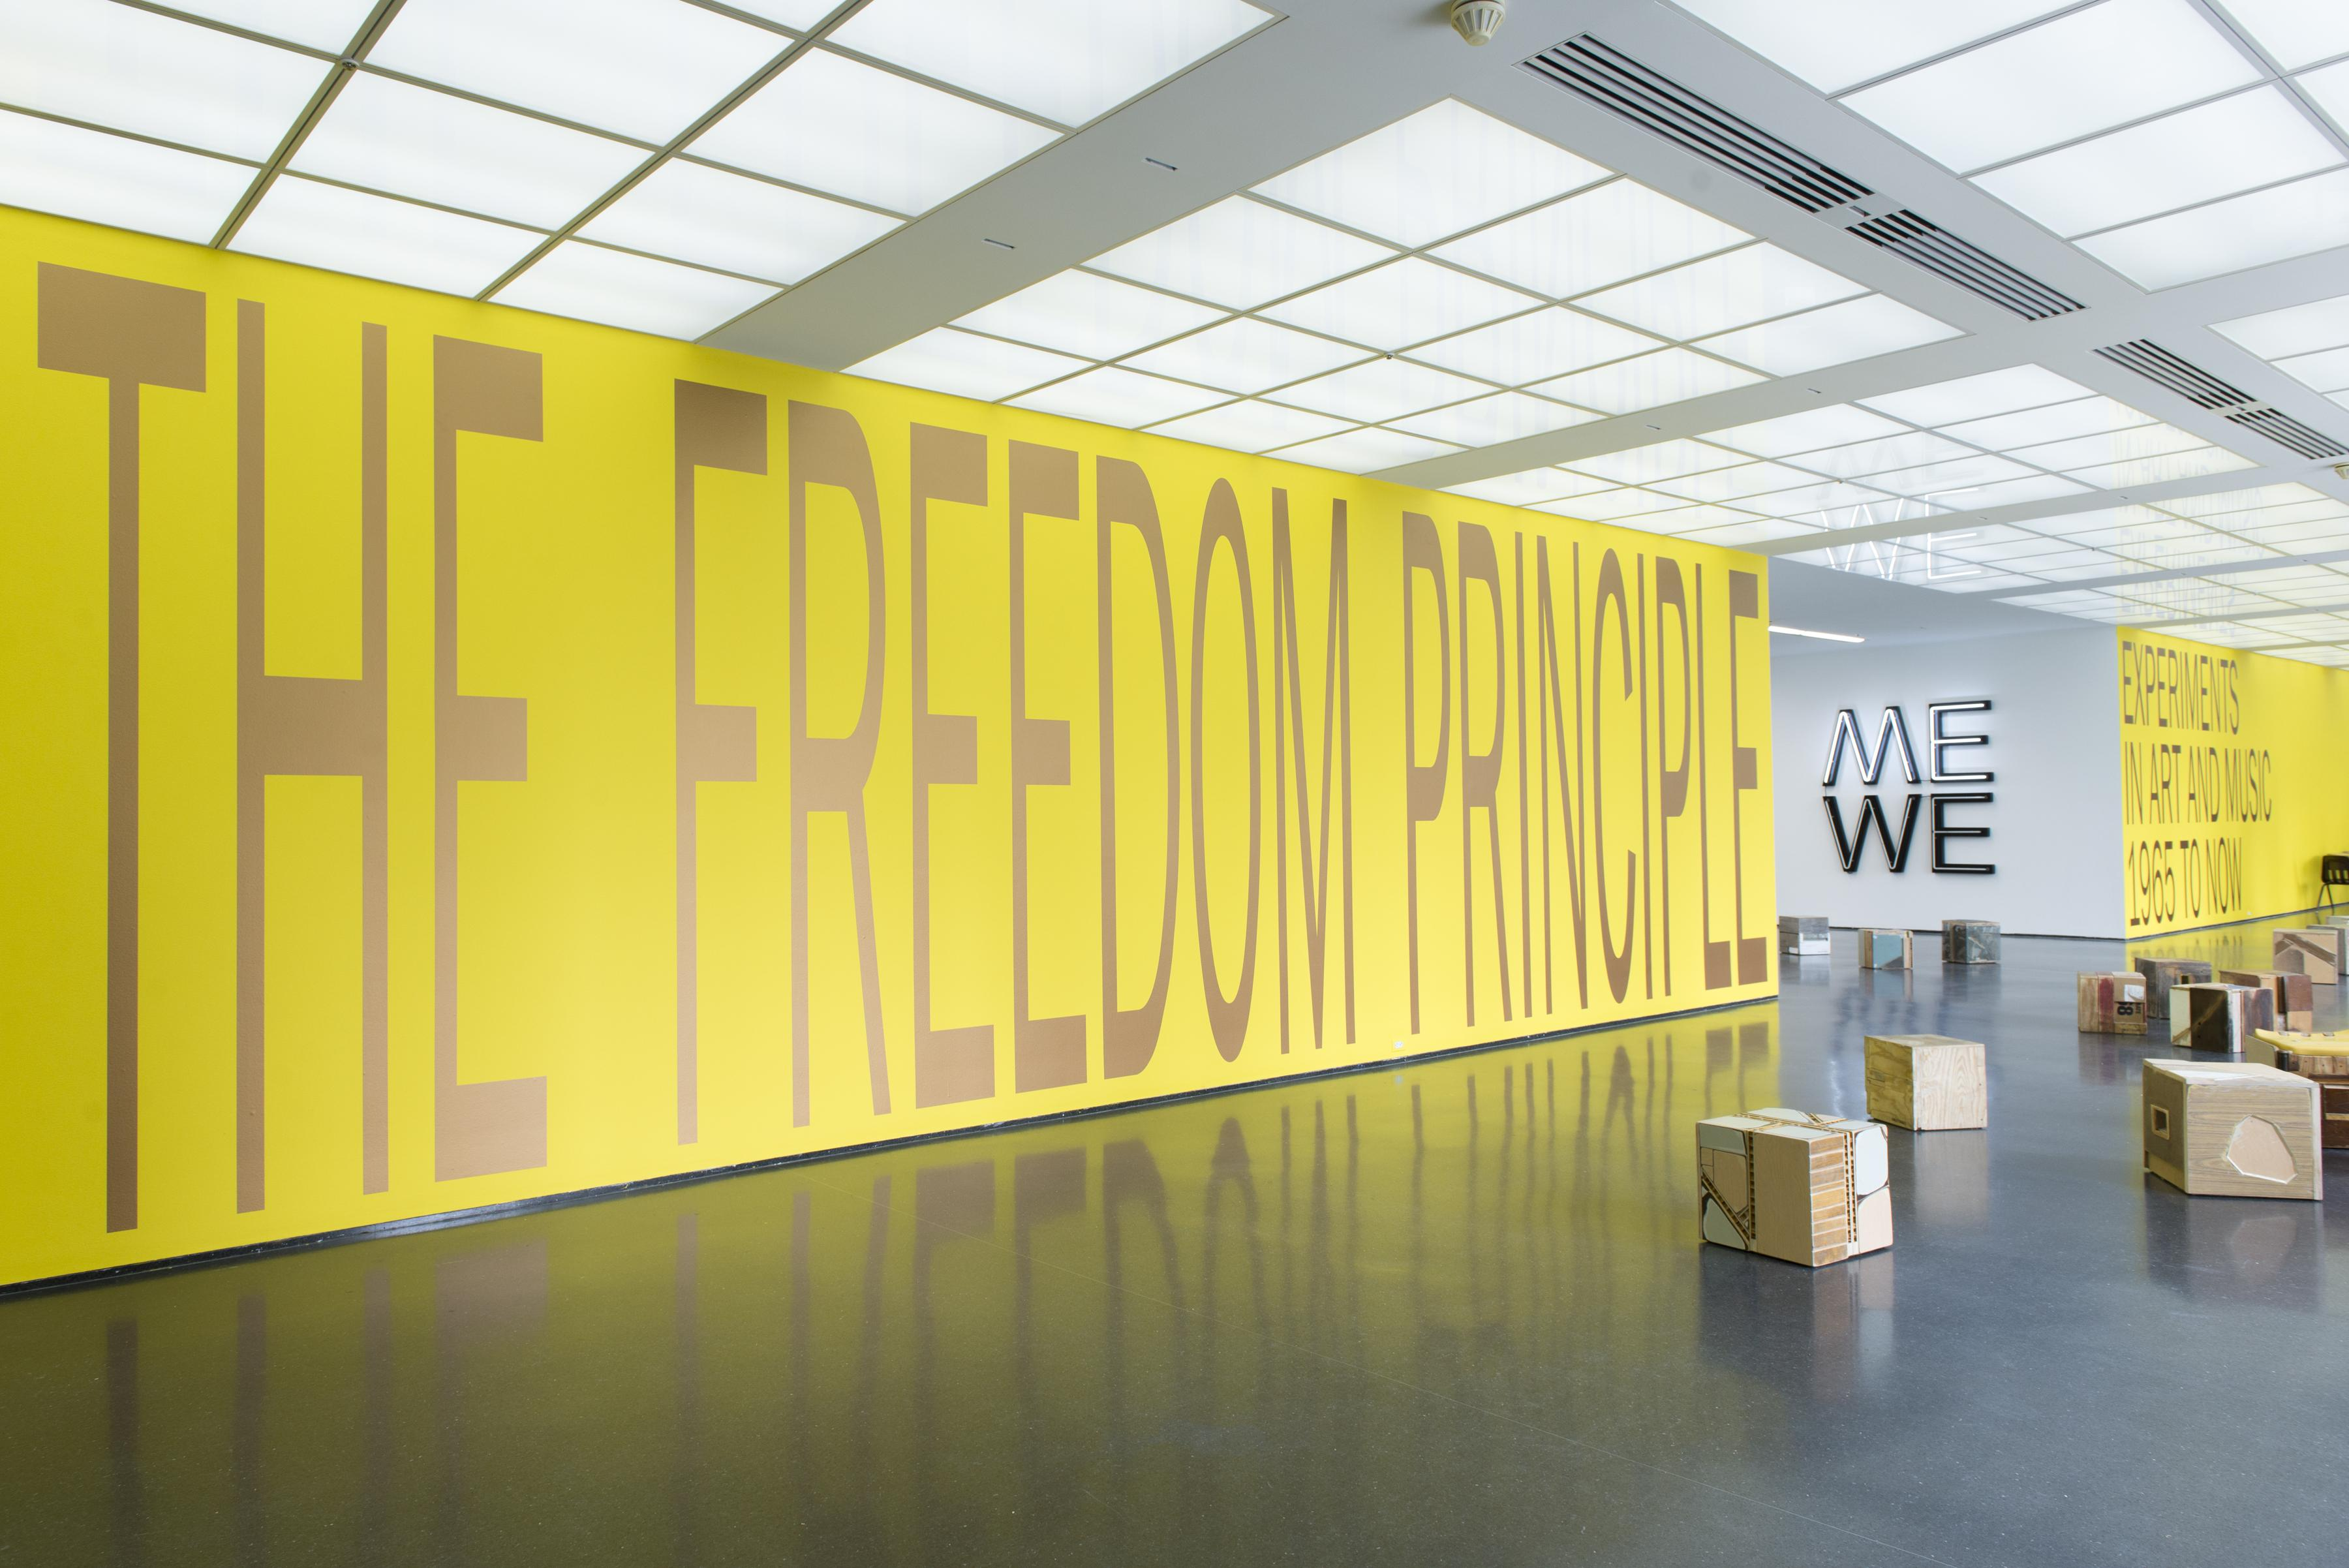 """The bright yellow entry wall of an exhibition bears the floor-to-ceiling title, """"THE FREEDOM PRINCIPLE."""" In the foreground of the image, stool-sized boxes in wood and paper appear; beyond the yellow wall, there is a light installation of the word """"ME"""" stacked atop the word """"WE."""""""